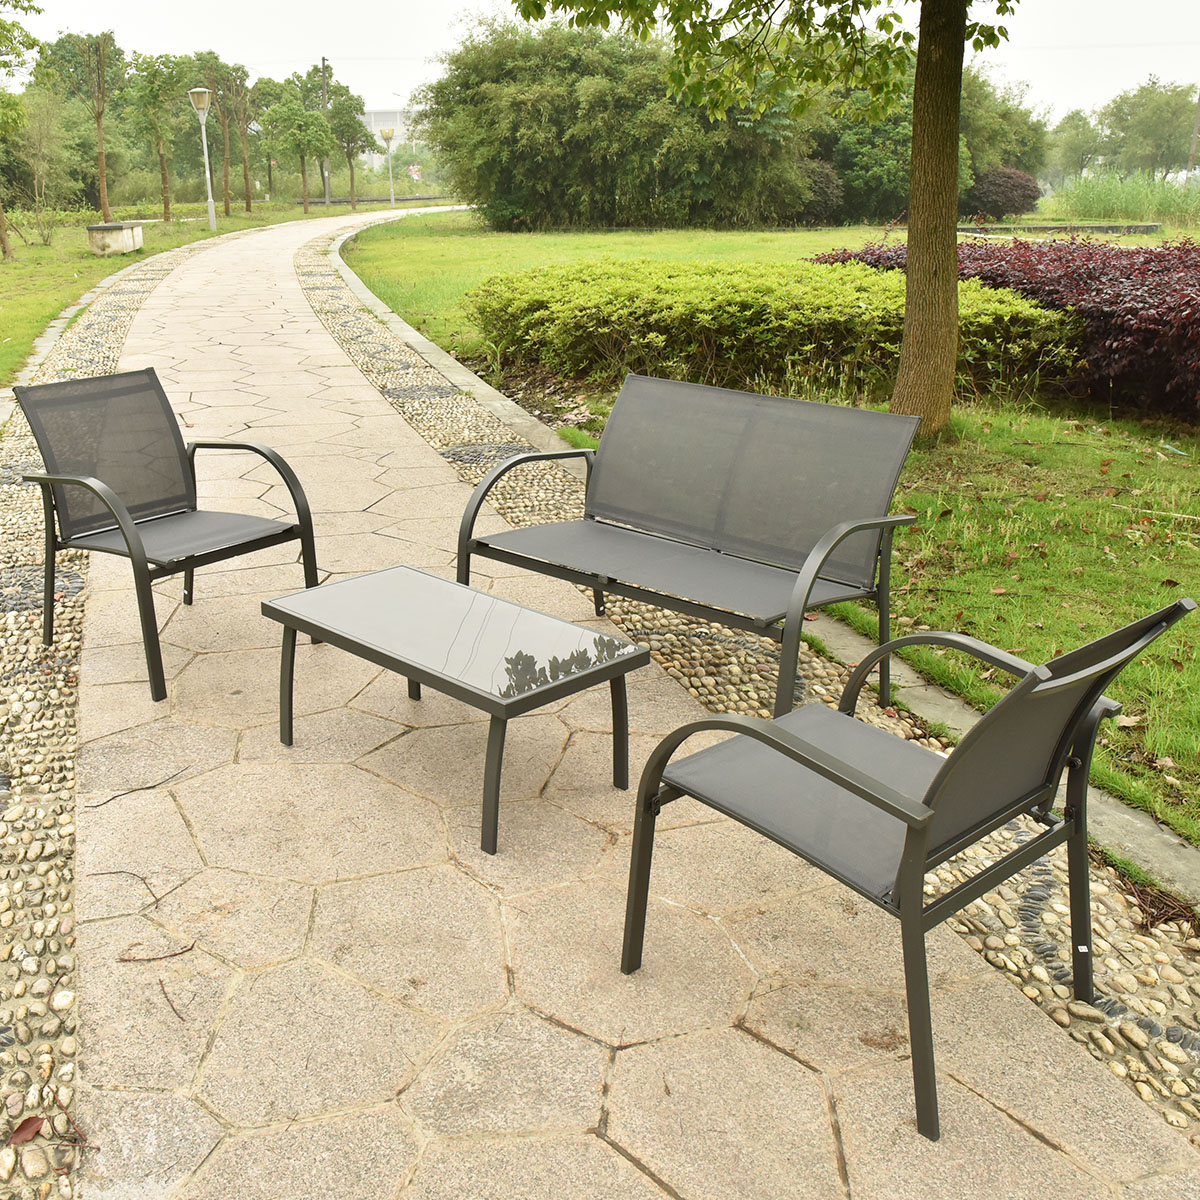 Patio furniture Set  63